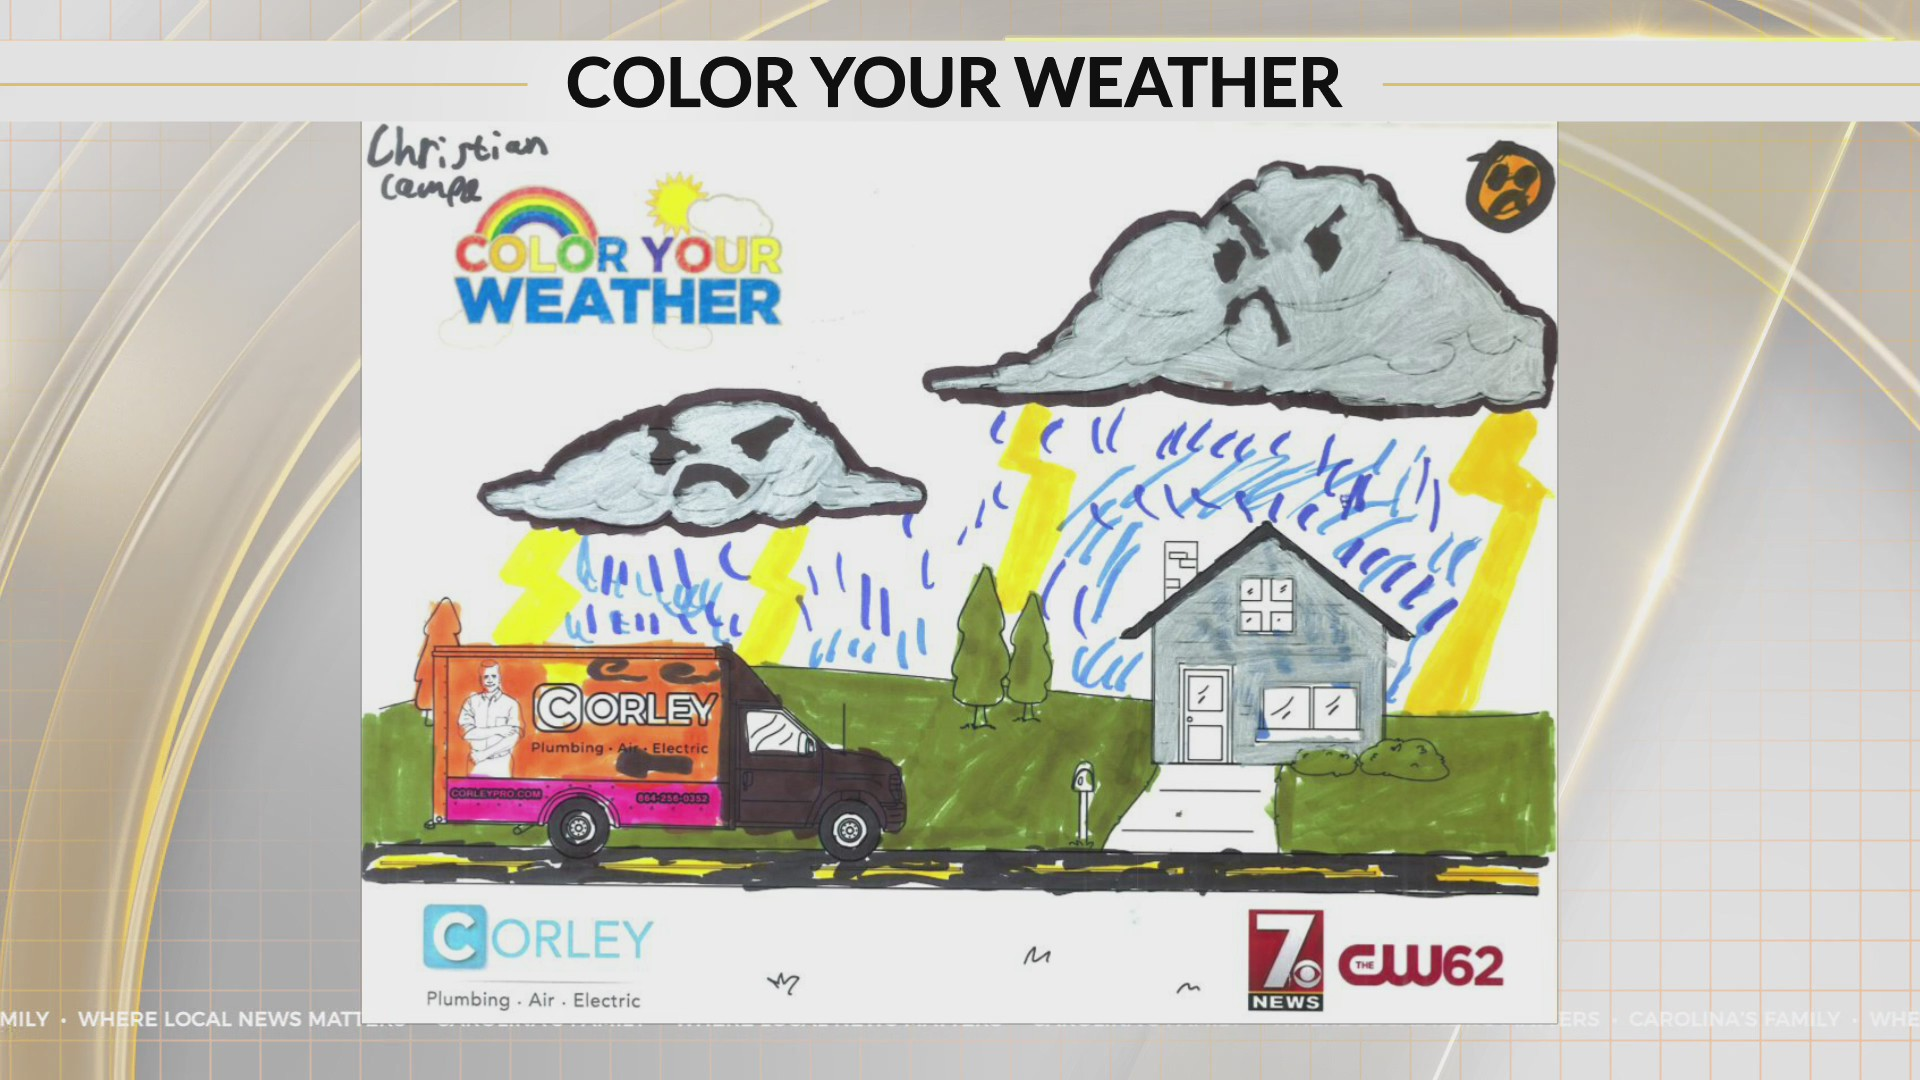 Color Your Weather Christian